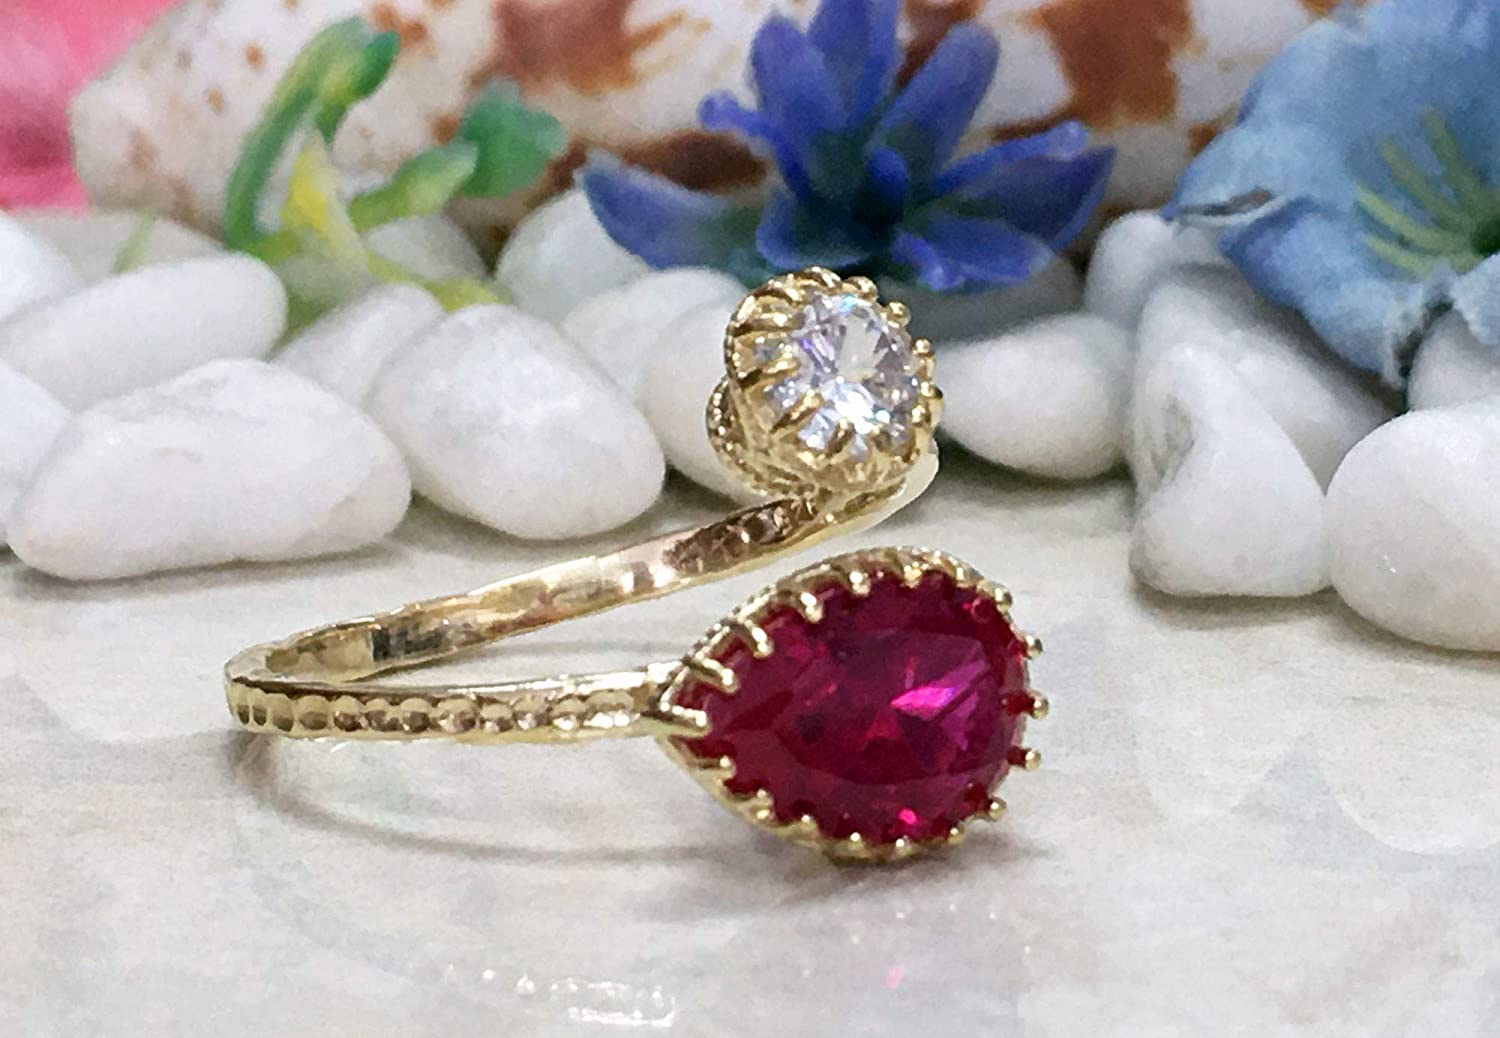 Ruby Ring - Dual Gemstone Outlet SALE Finally resale start Birthstone Two Birt July